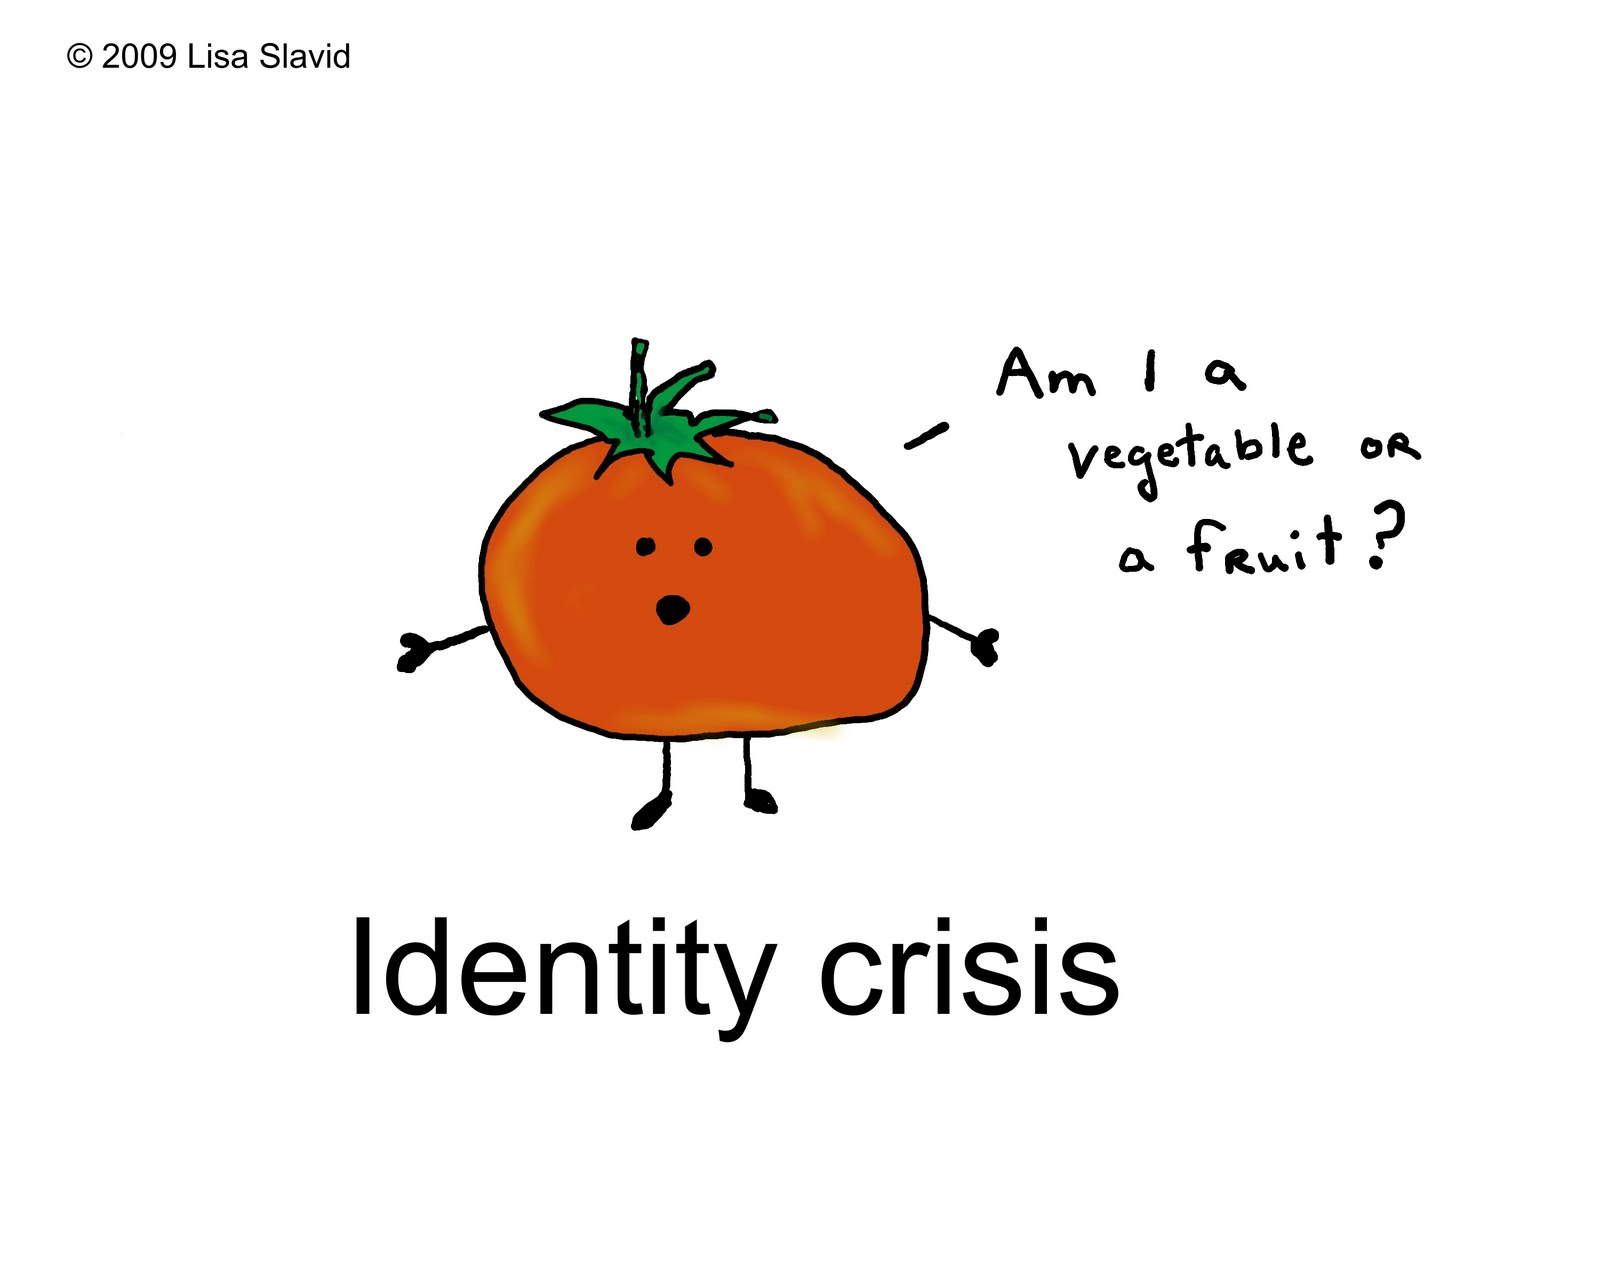 teenage identity crisis essay Identity crisis: the teenage midlife crisis pages 1 sign up to view the complete essay the teenage midlife crisis, erica c bowman, individualism, teeagers.